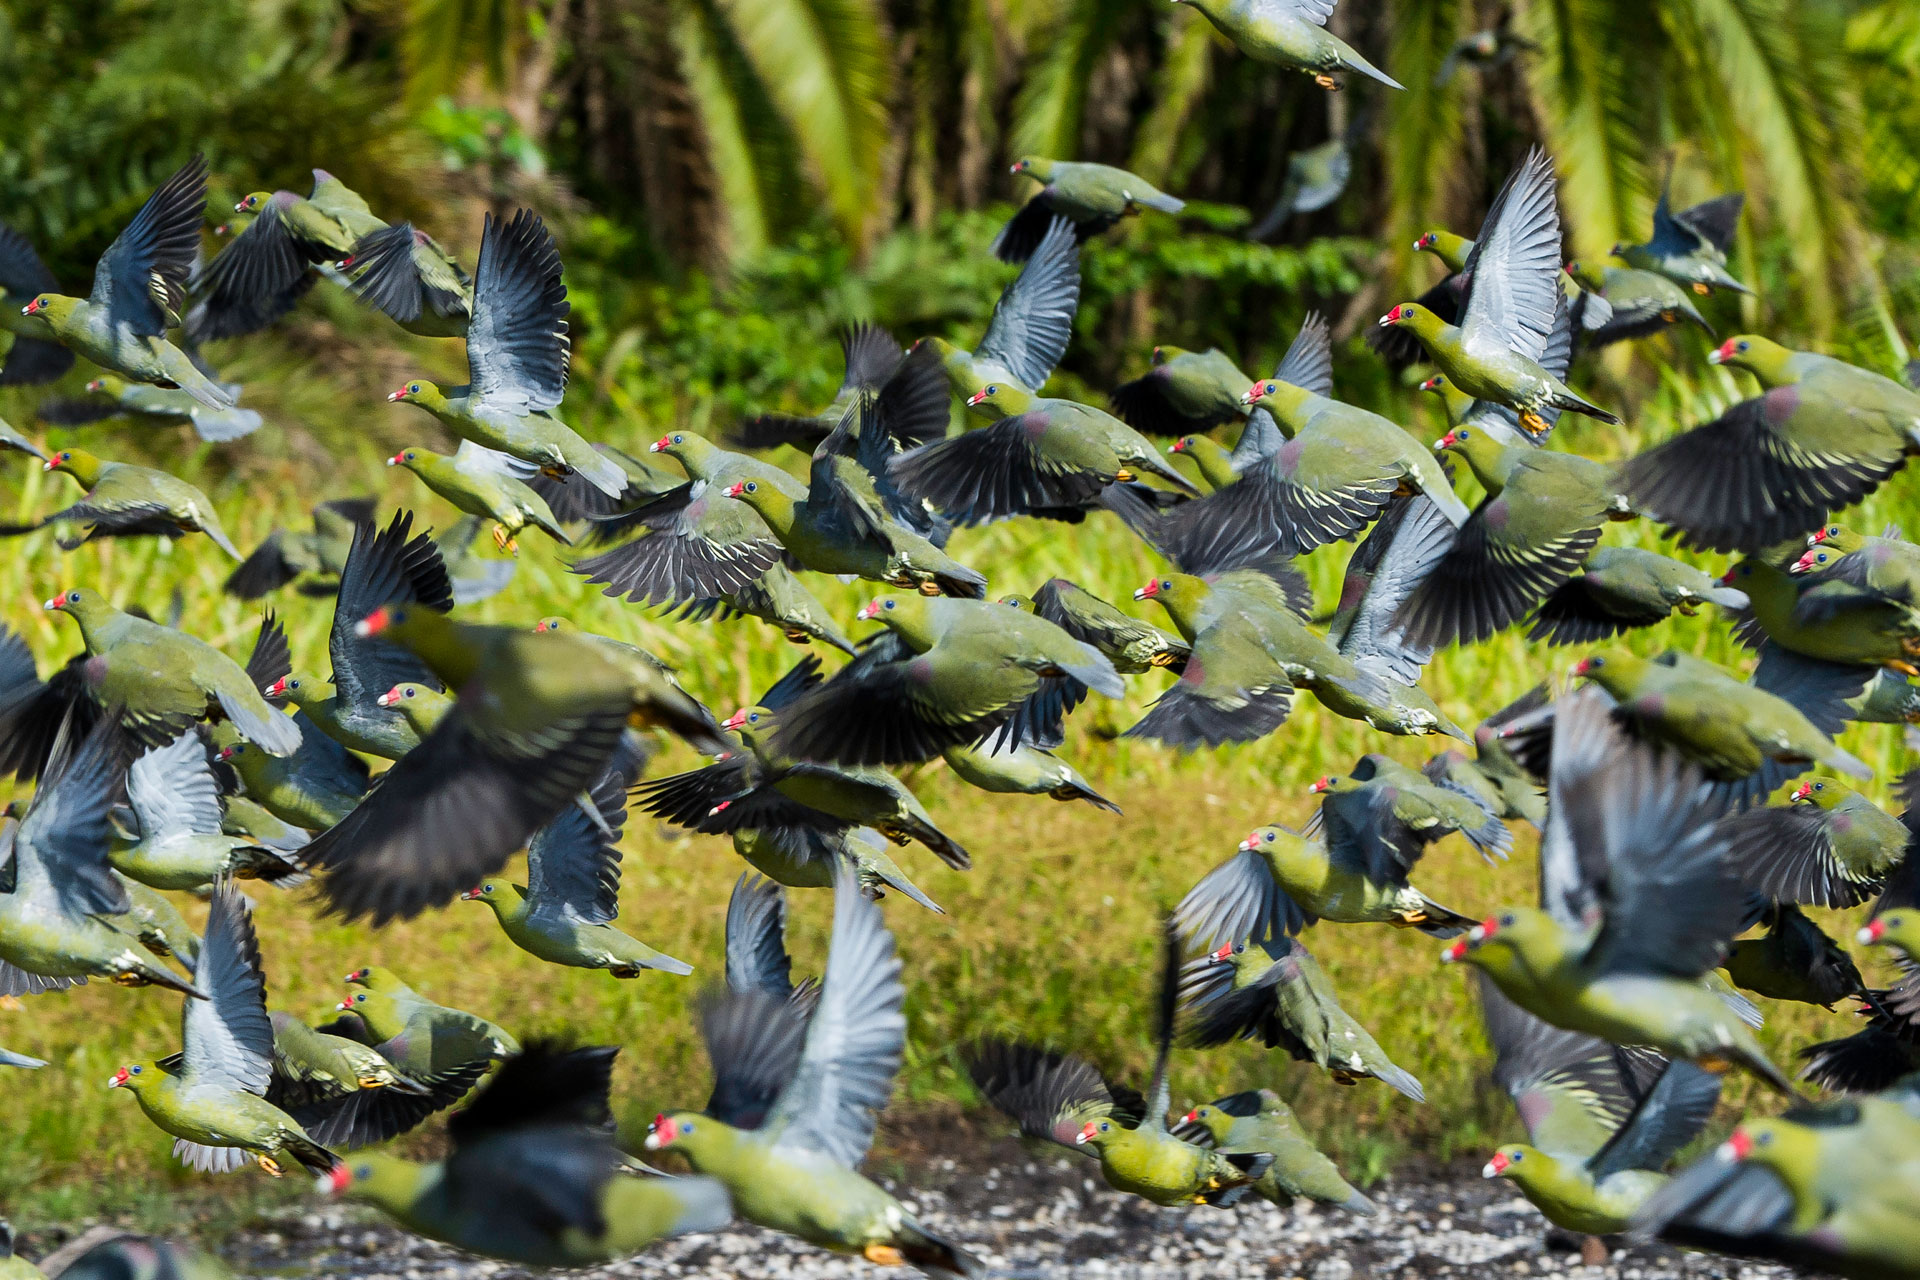 Congo birding, flock of green pigeon, Odzala-Kokoua National Park